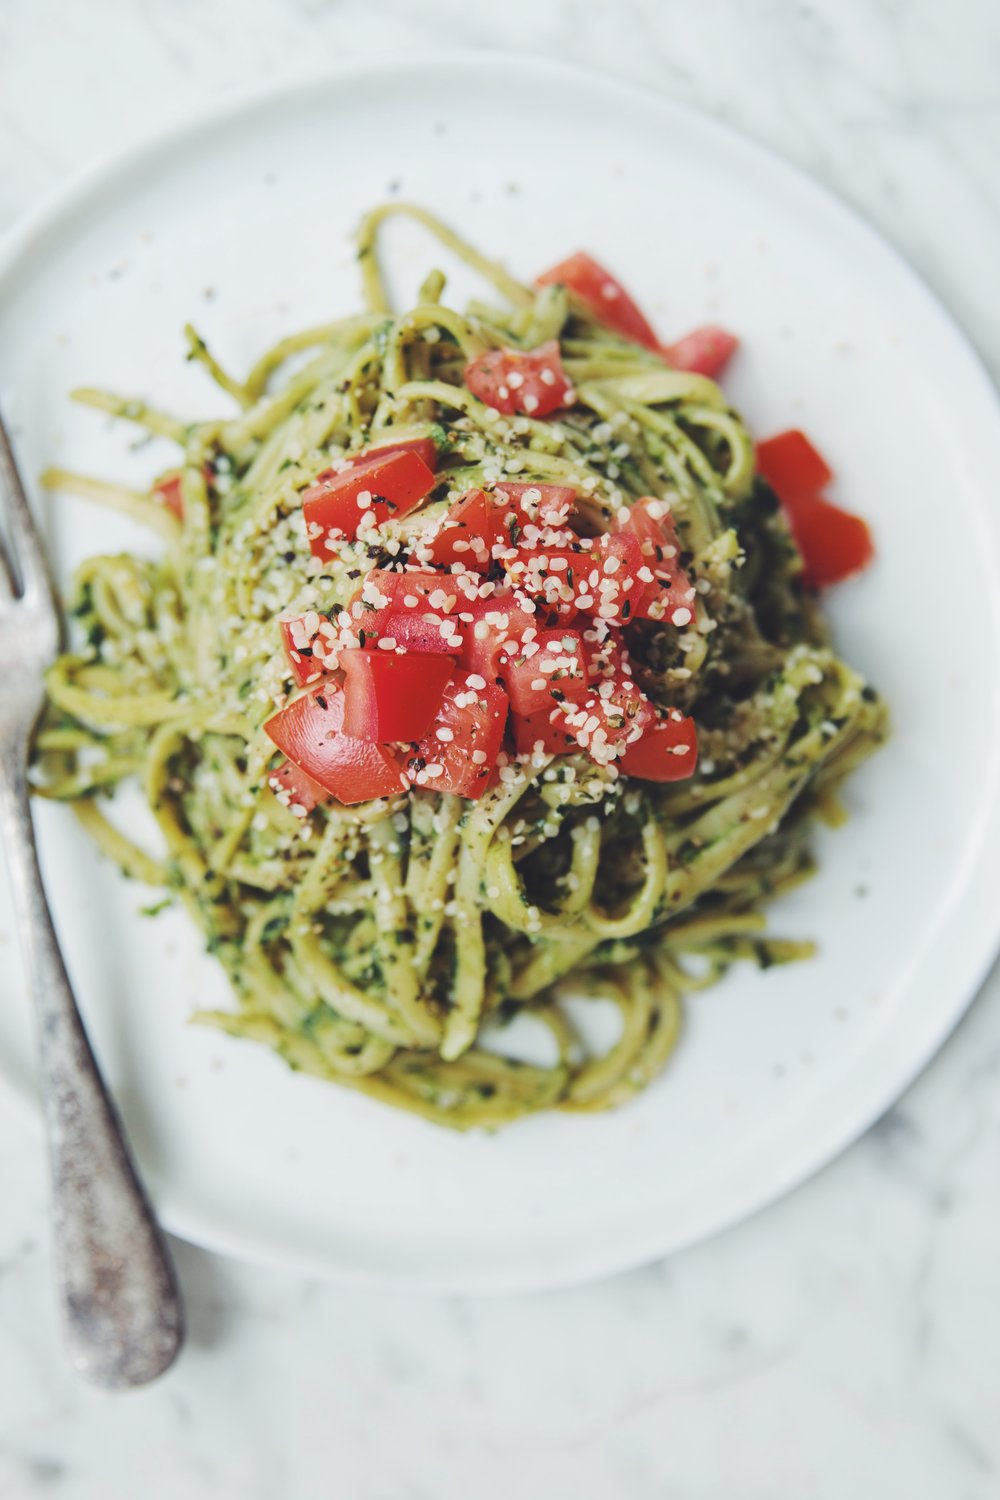 avocado pesto pasta | RECIPE on hotforfoodblog.com